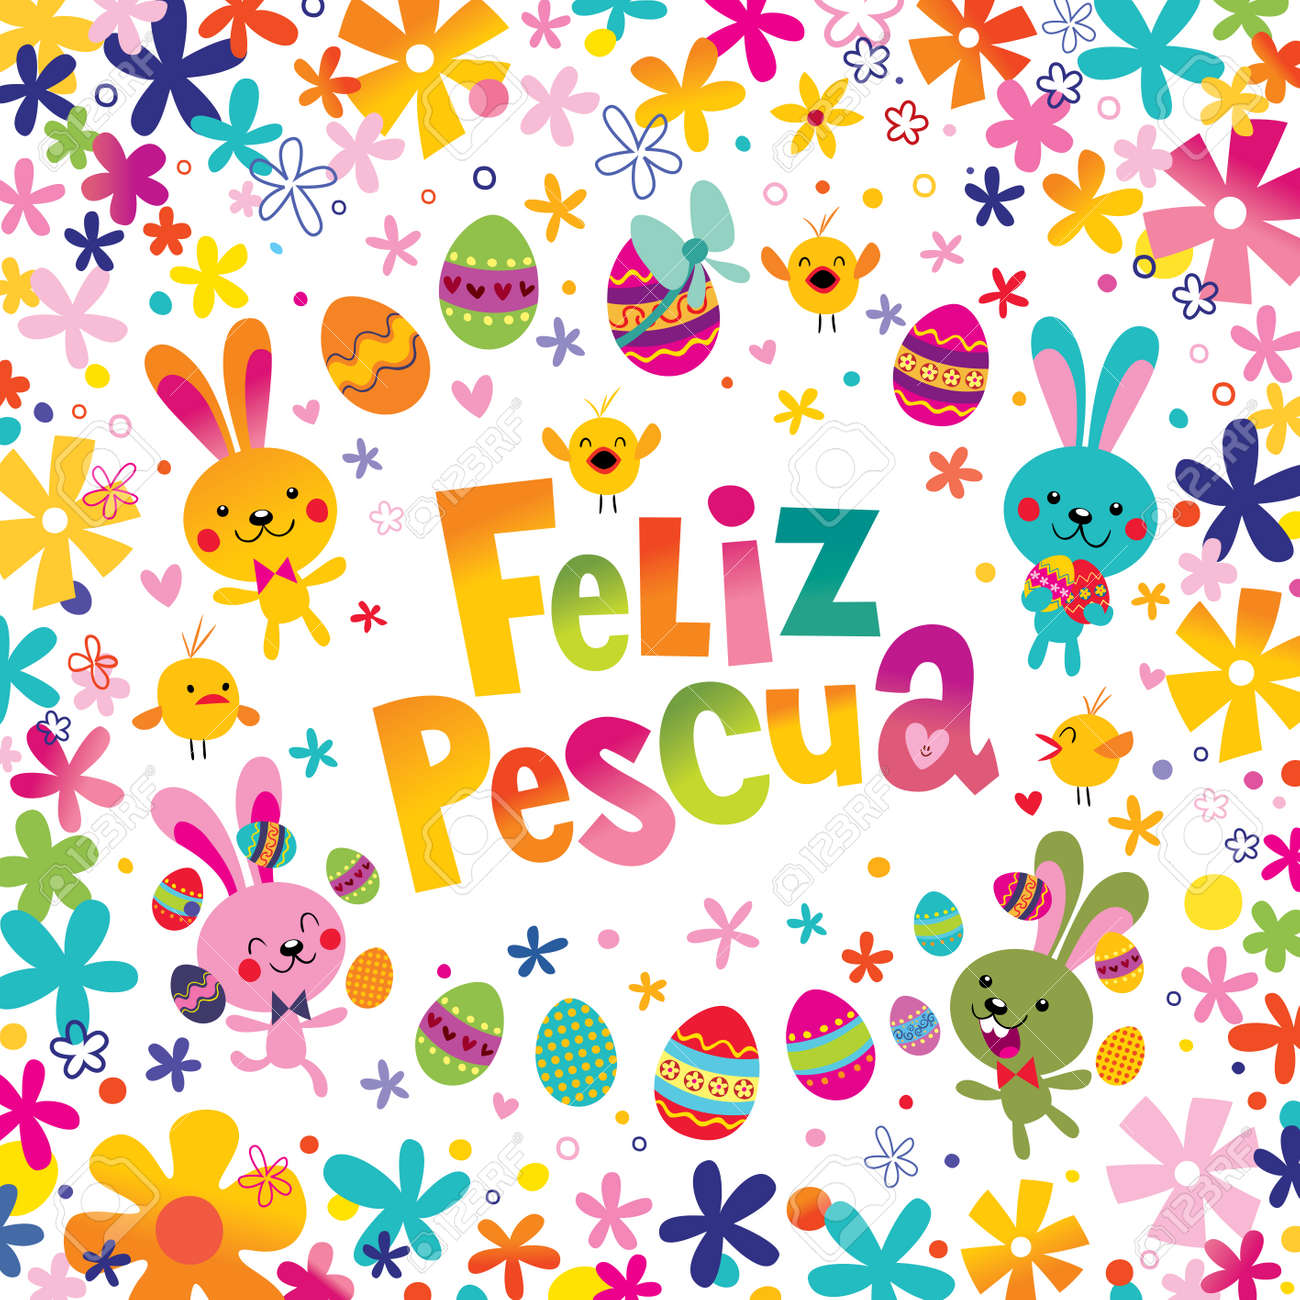 Feliz pascua happy easter in spanish greeting card royalty free feliz pascua happy easter in spanish greeting card stock vector 93388347 m4hsunfo